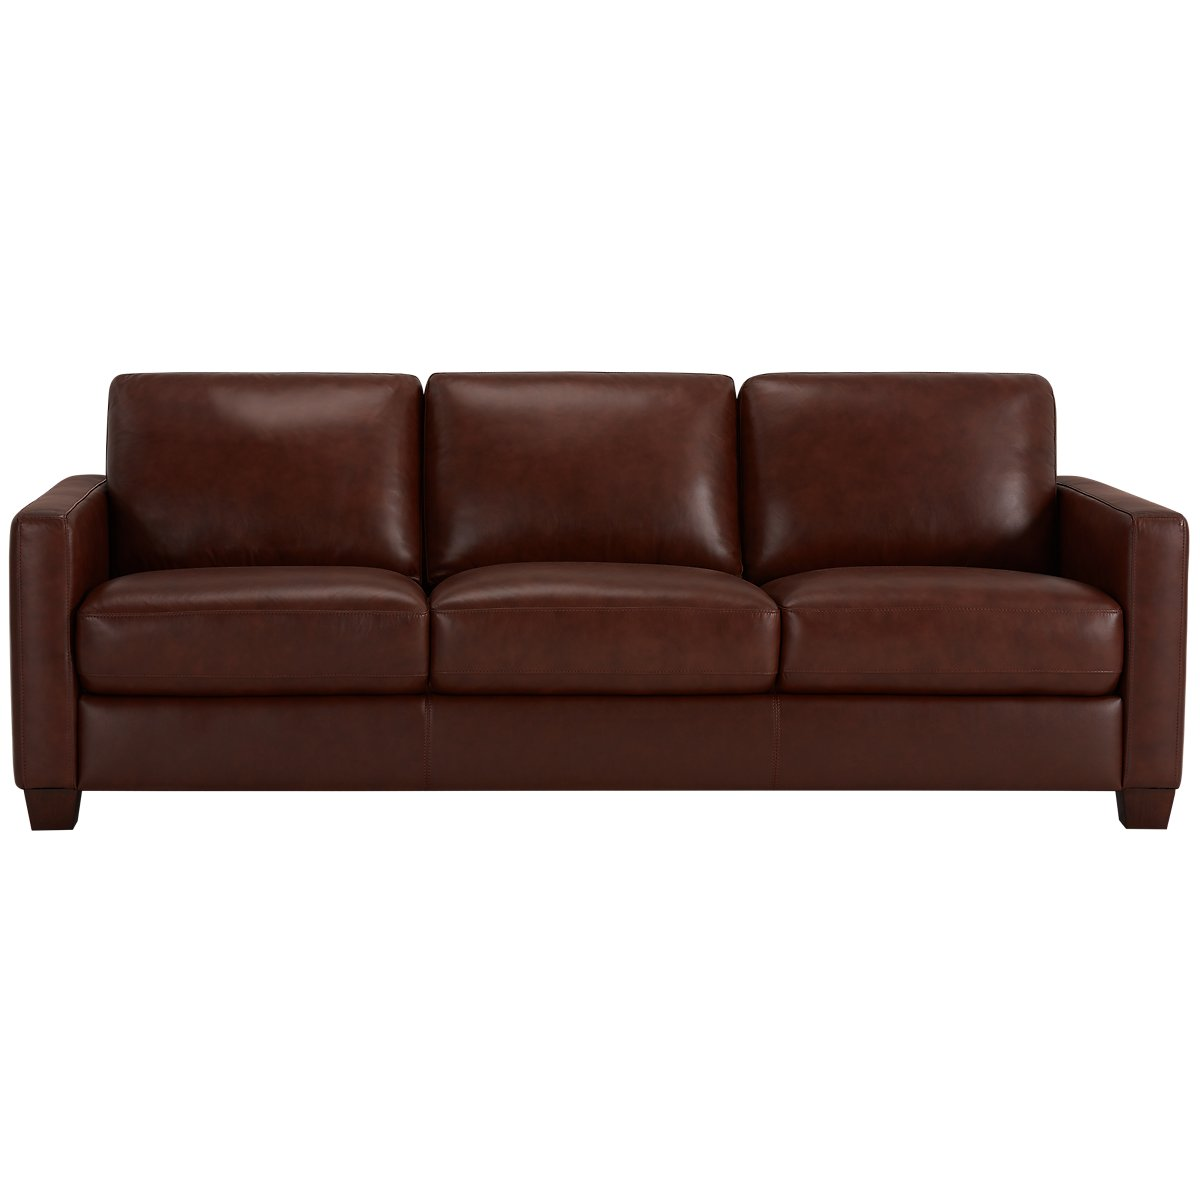 brown leather sofa isolated - photo #30